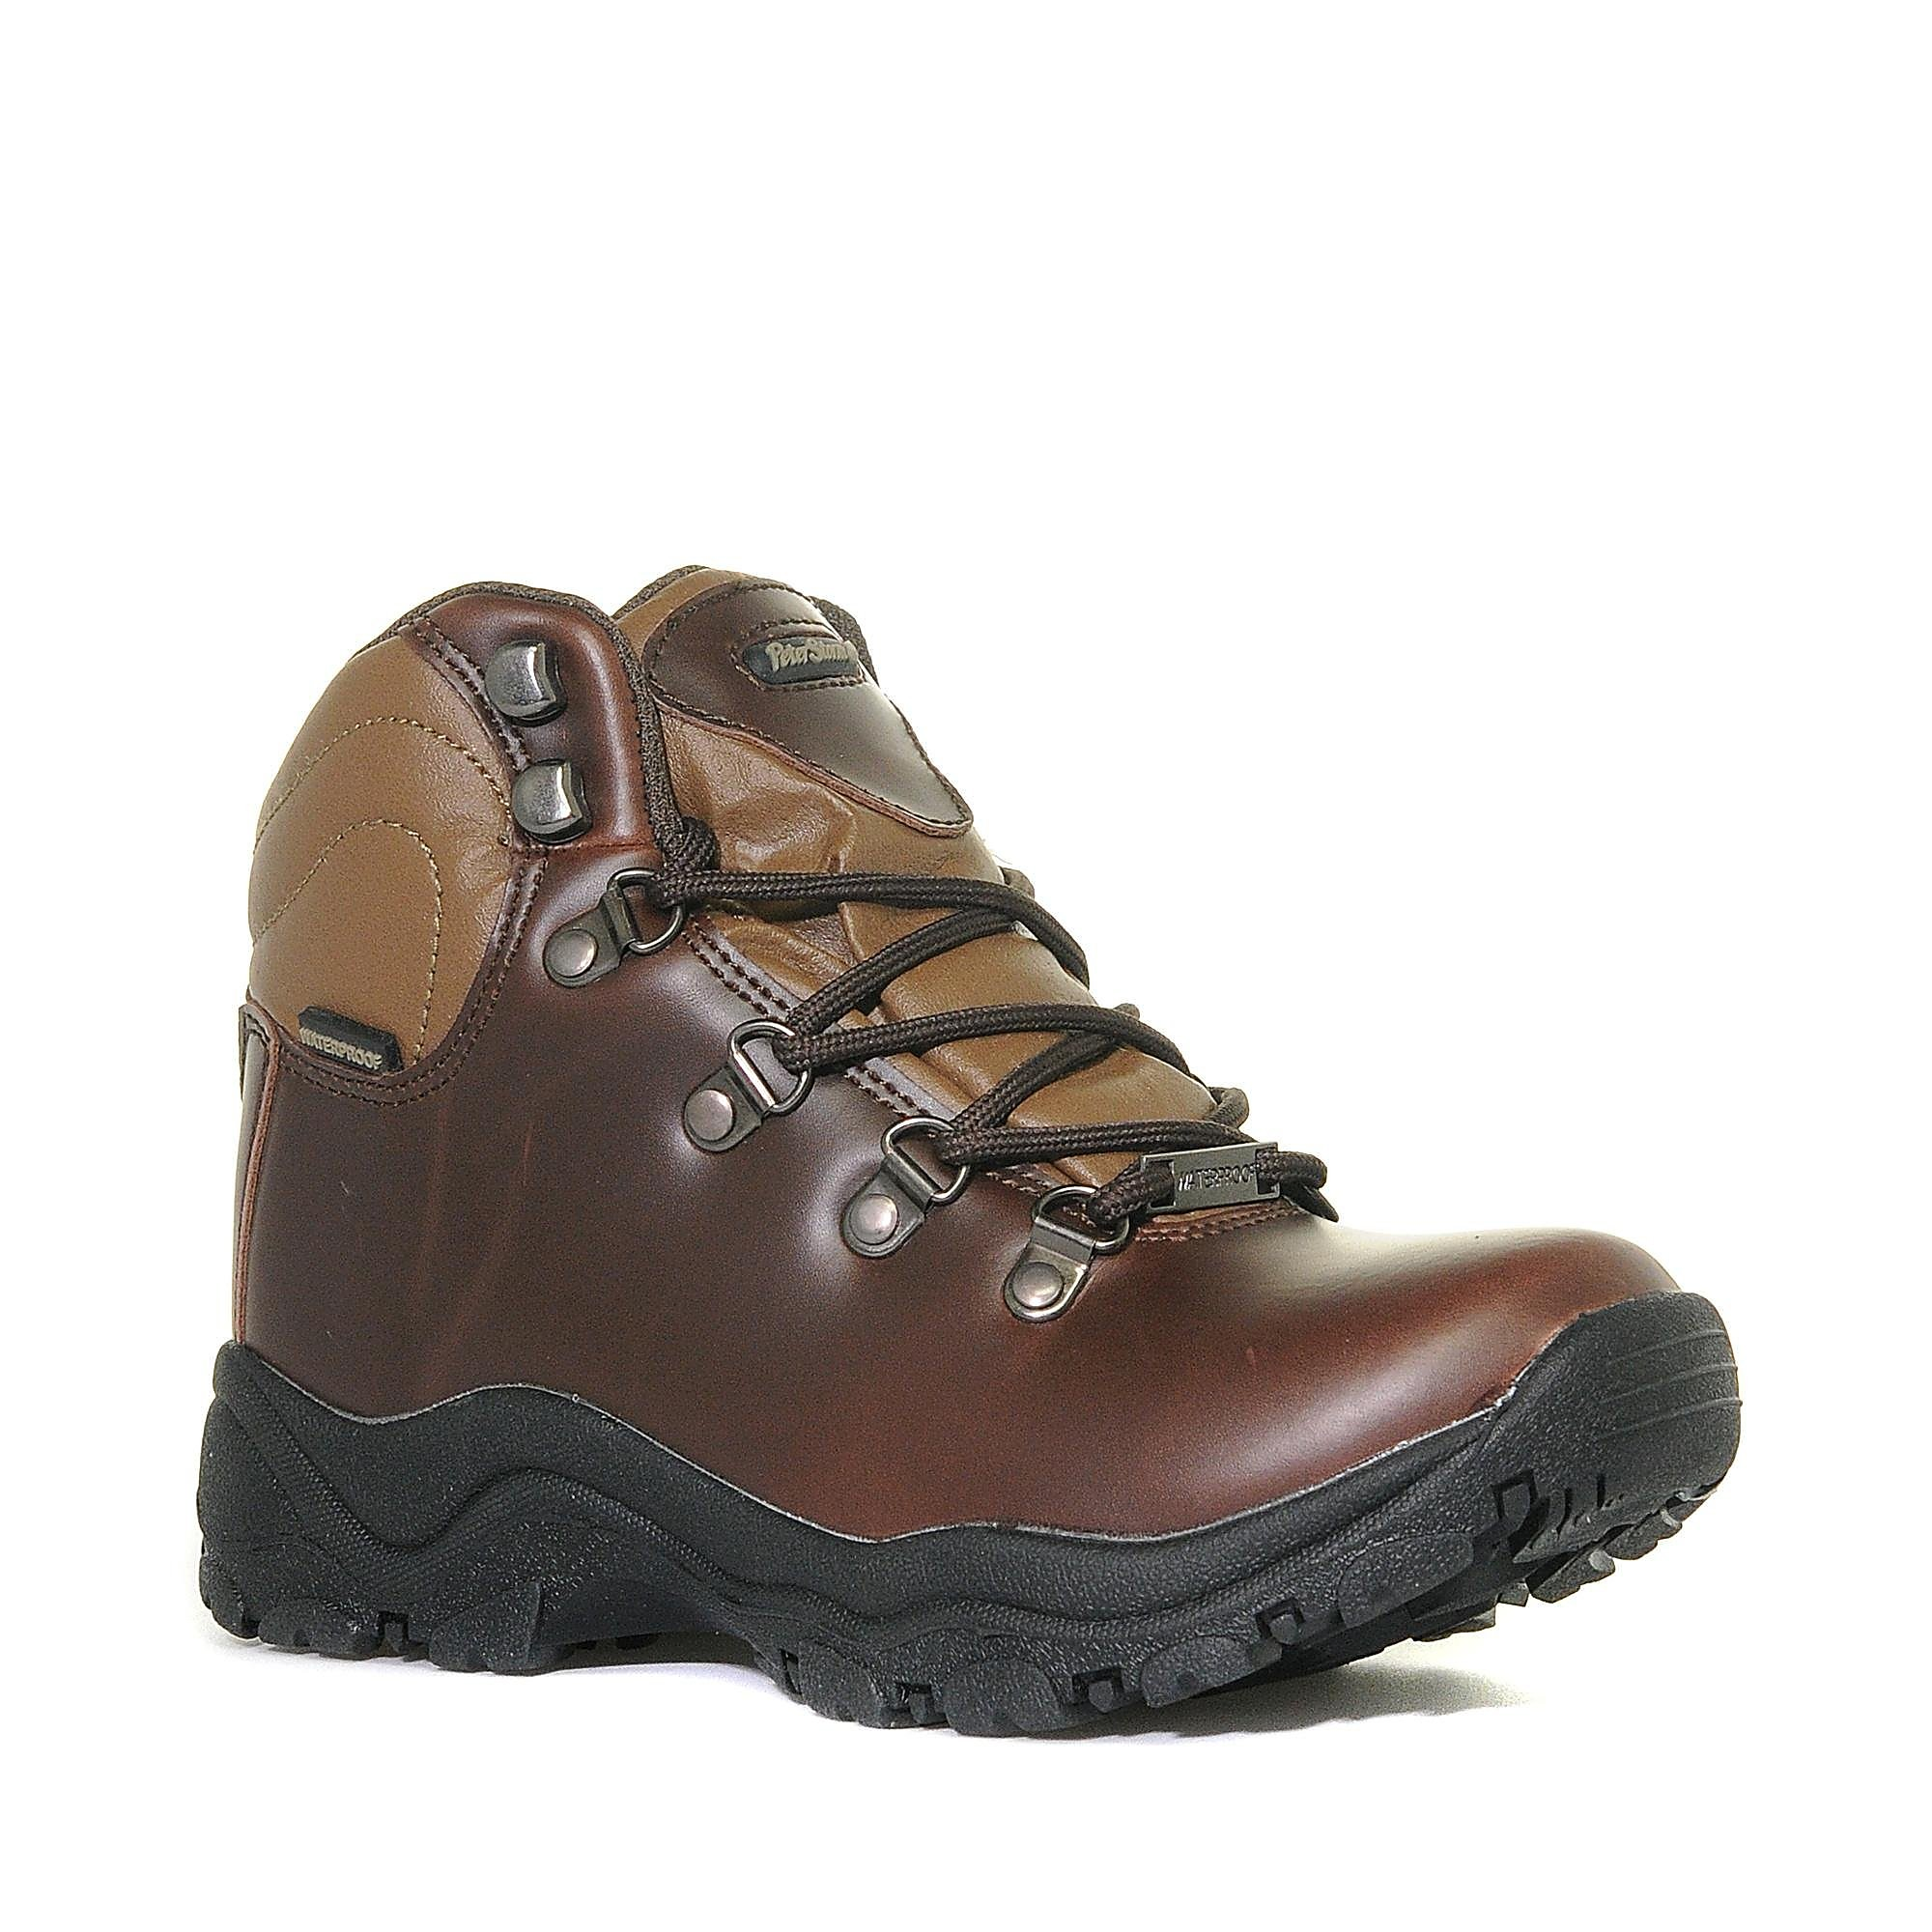 Peter Storm Junior Gower Walking Boots